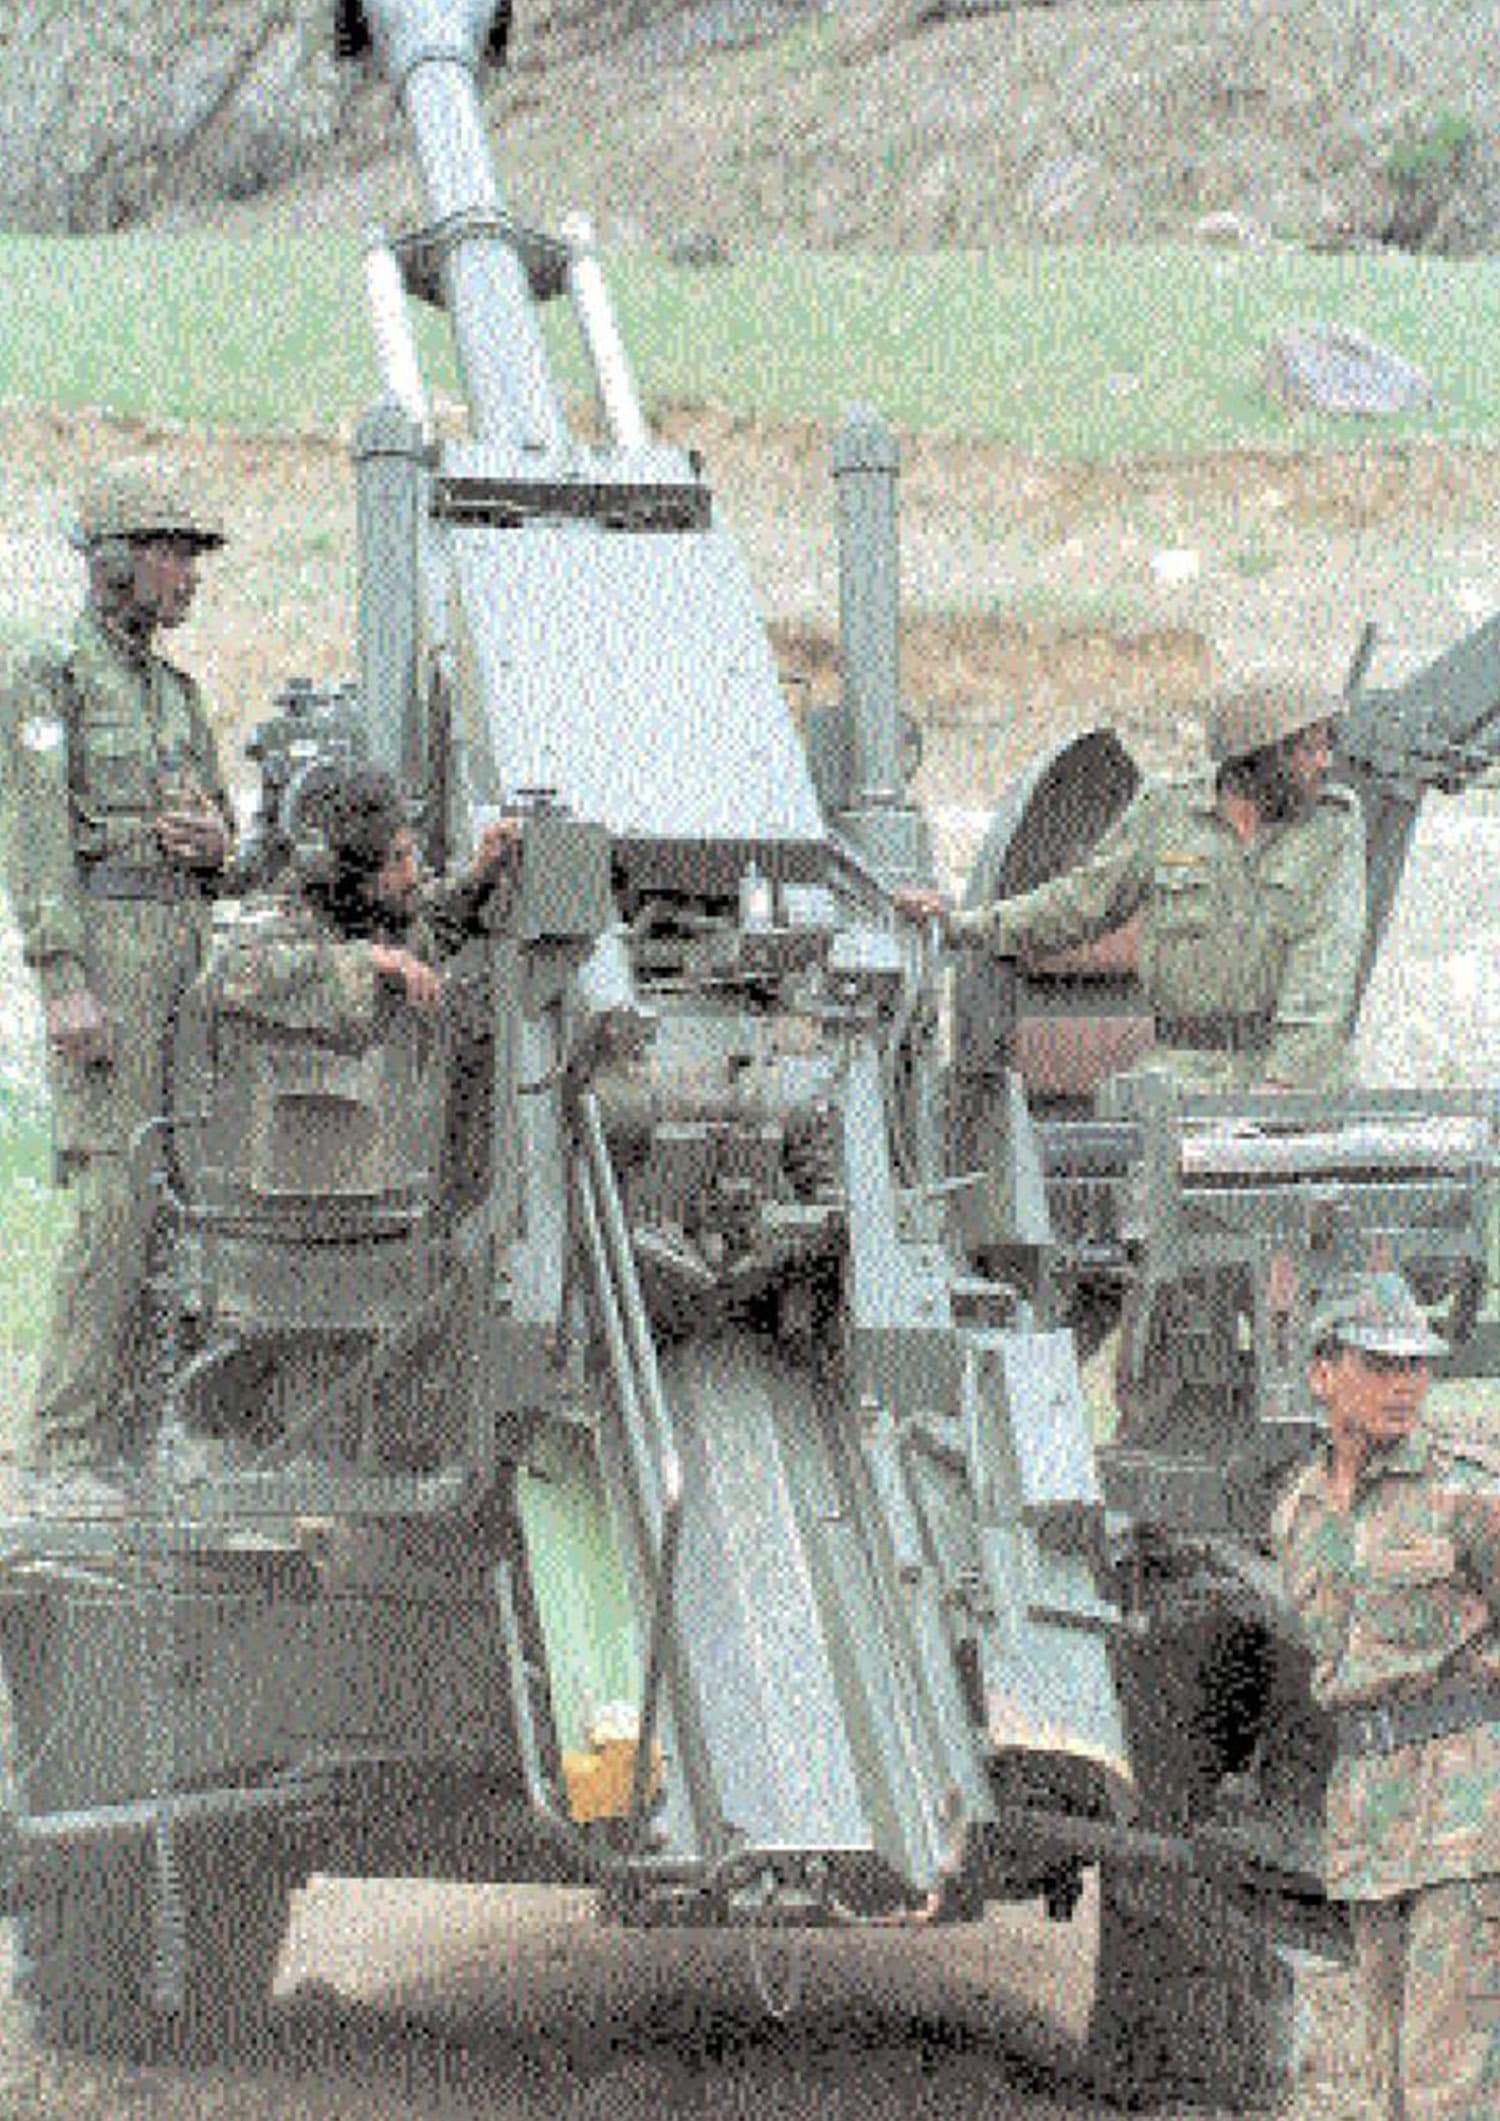 The Indian Army: facing heavy losses | Archives